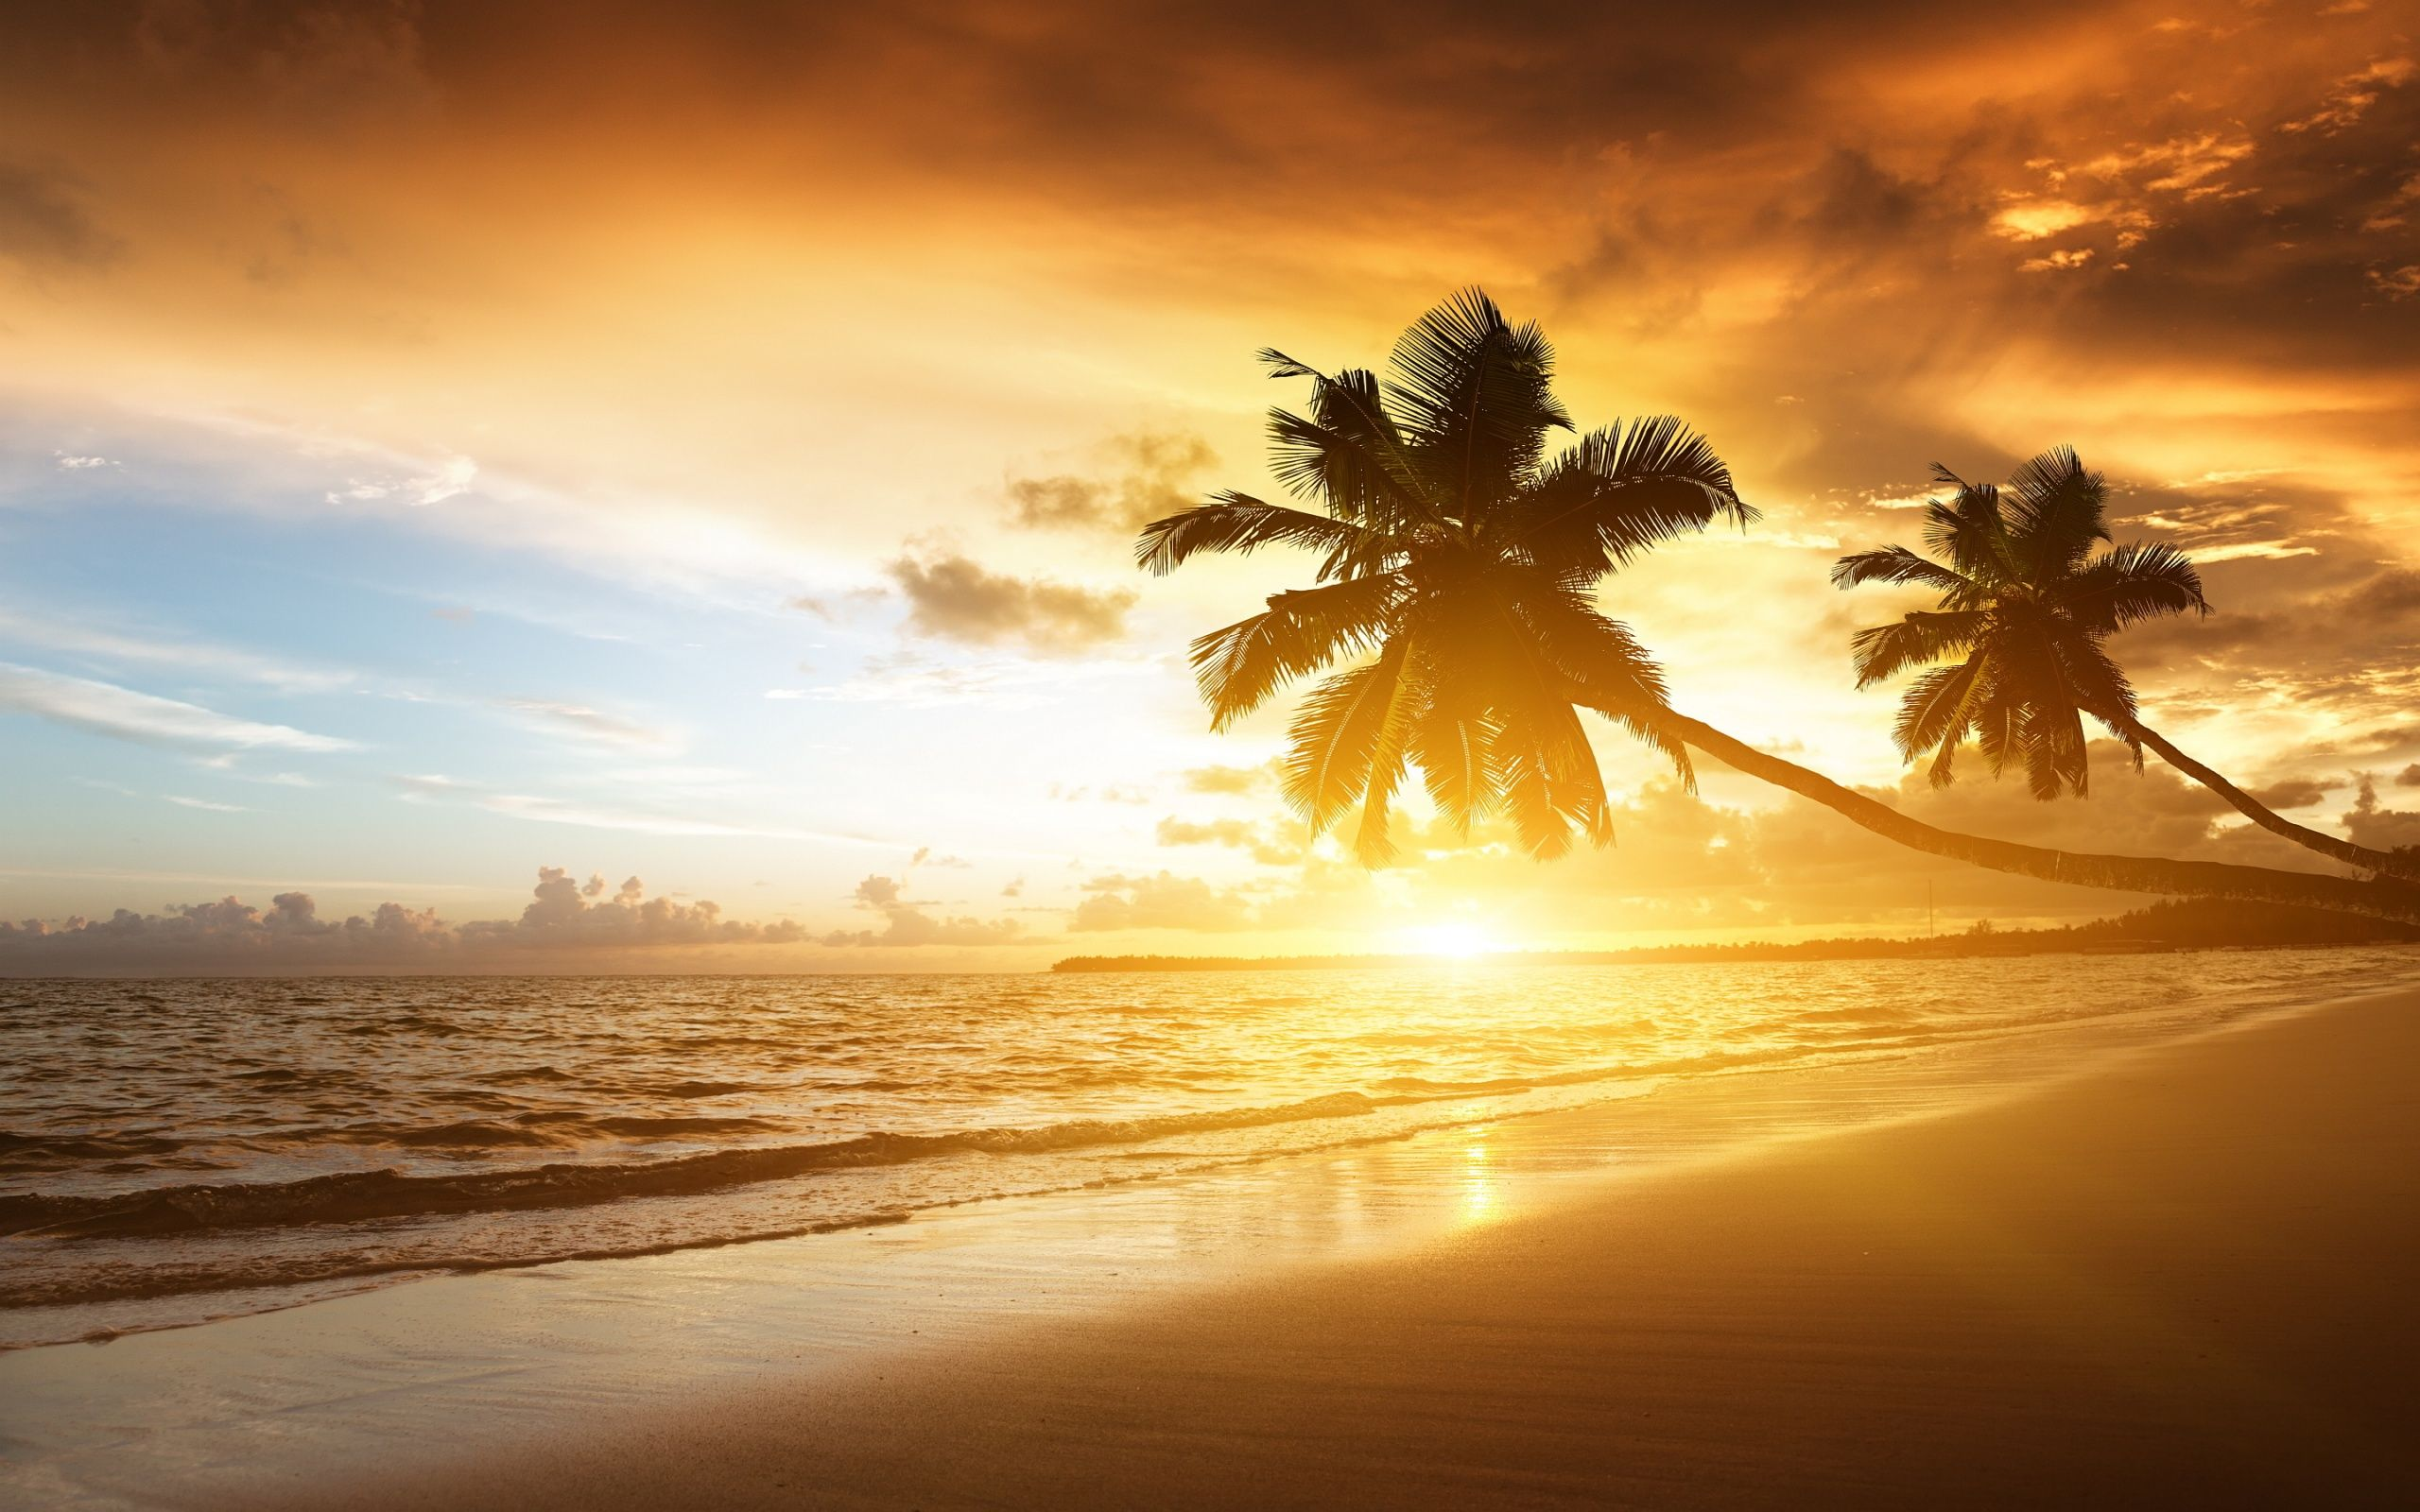 Are You Looking For Beach Sunset Wallpaper Your Desktop Background Ewallpaper Hub Provide Latest HD Wallpapers